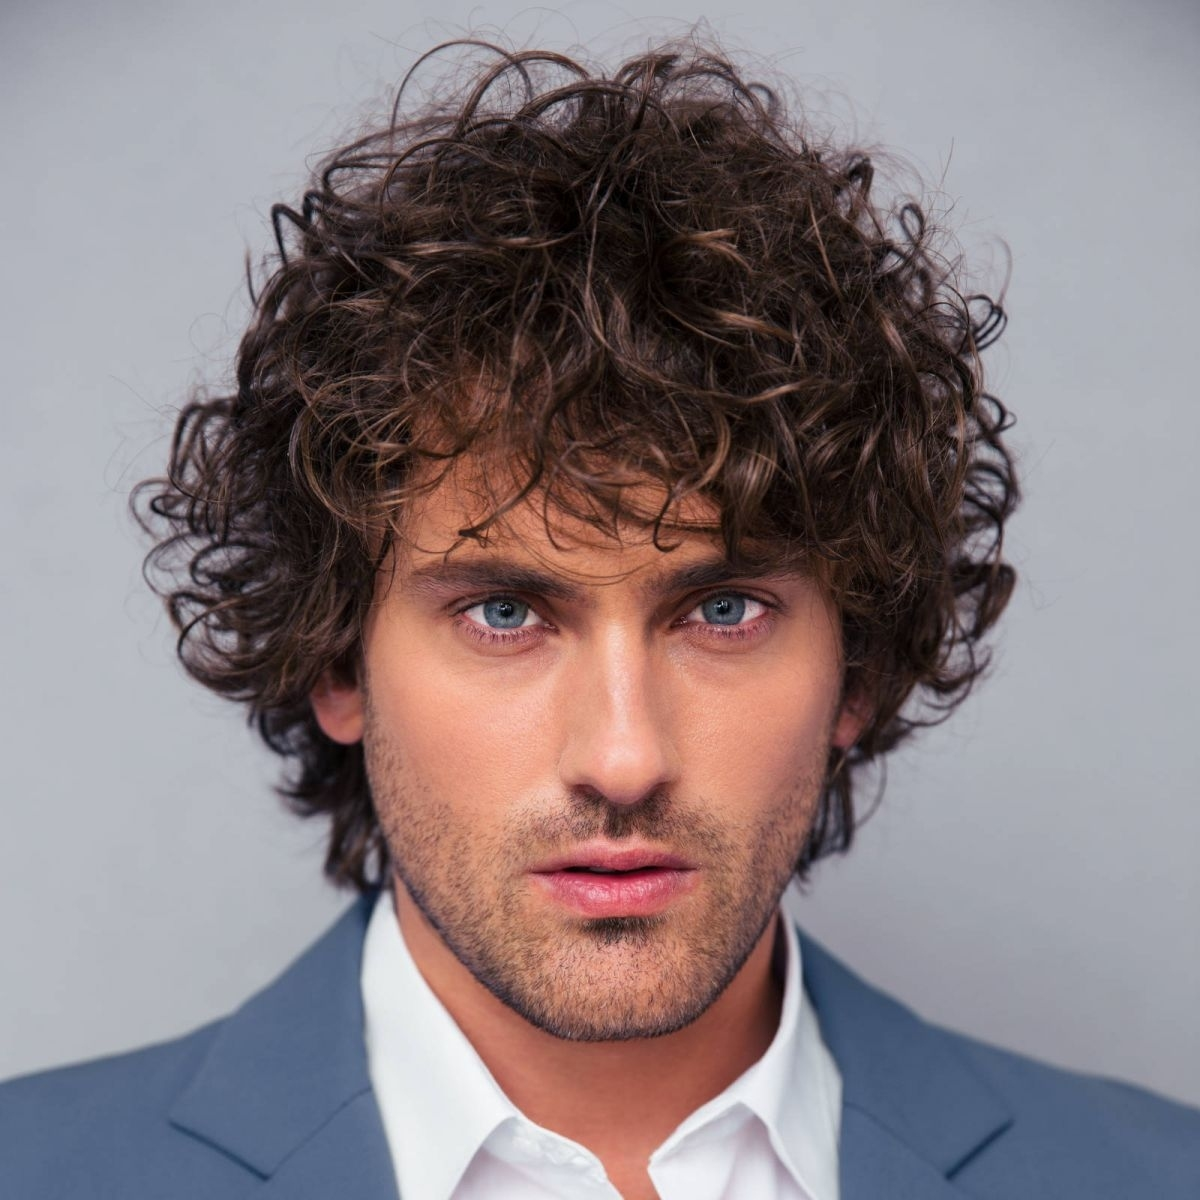 40 Modern Men's Hairstyles For Curly Hair (That Will Change Your Look) for Hairstyle For Curly Hair Guy